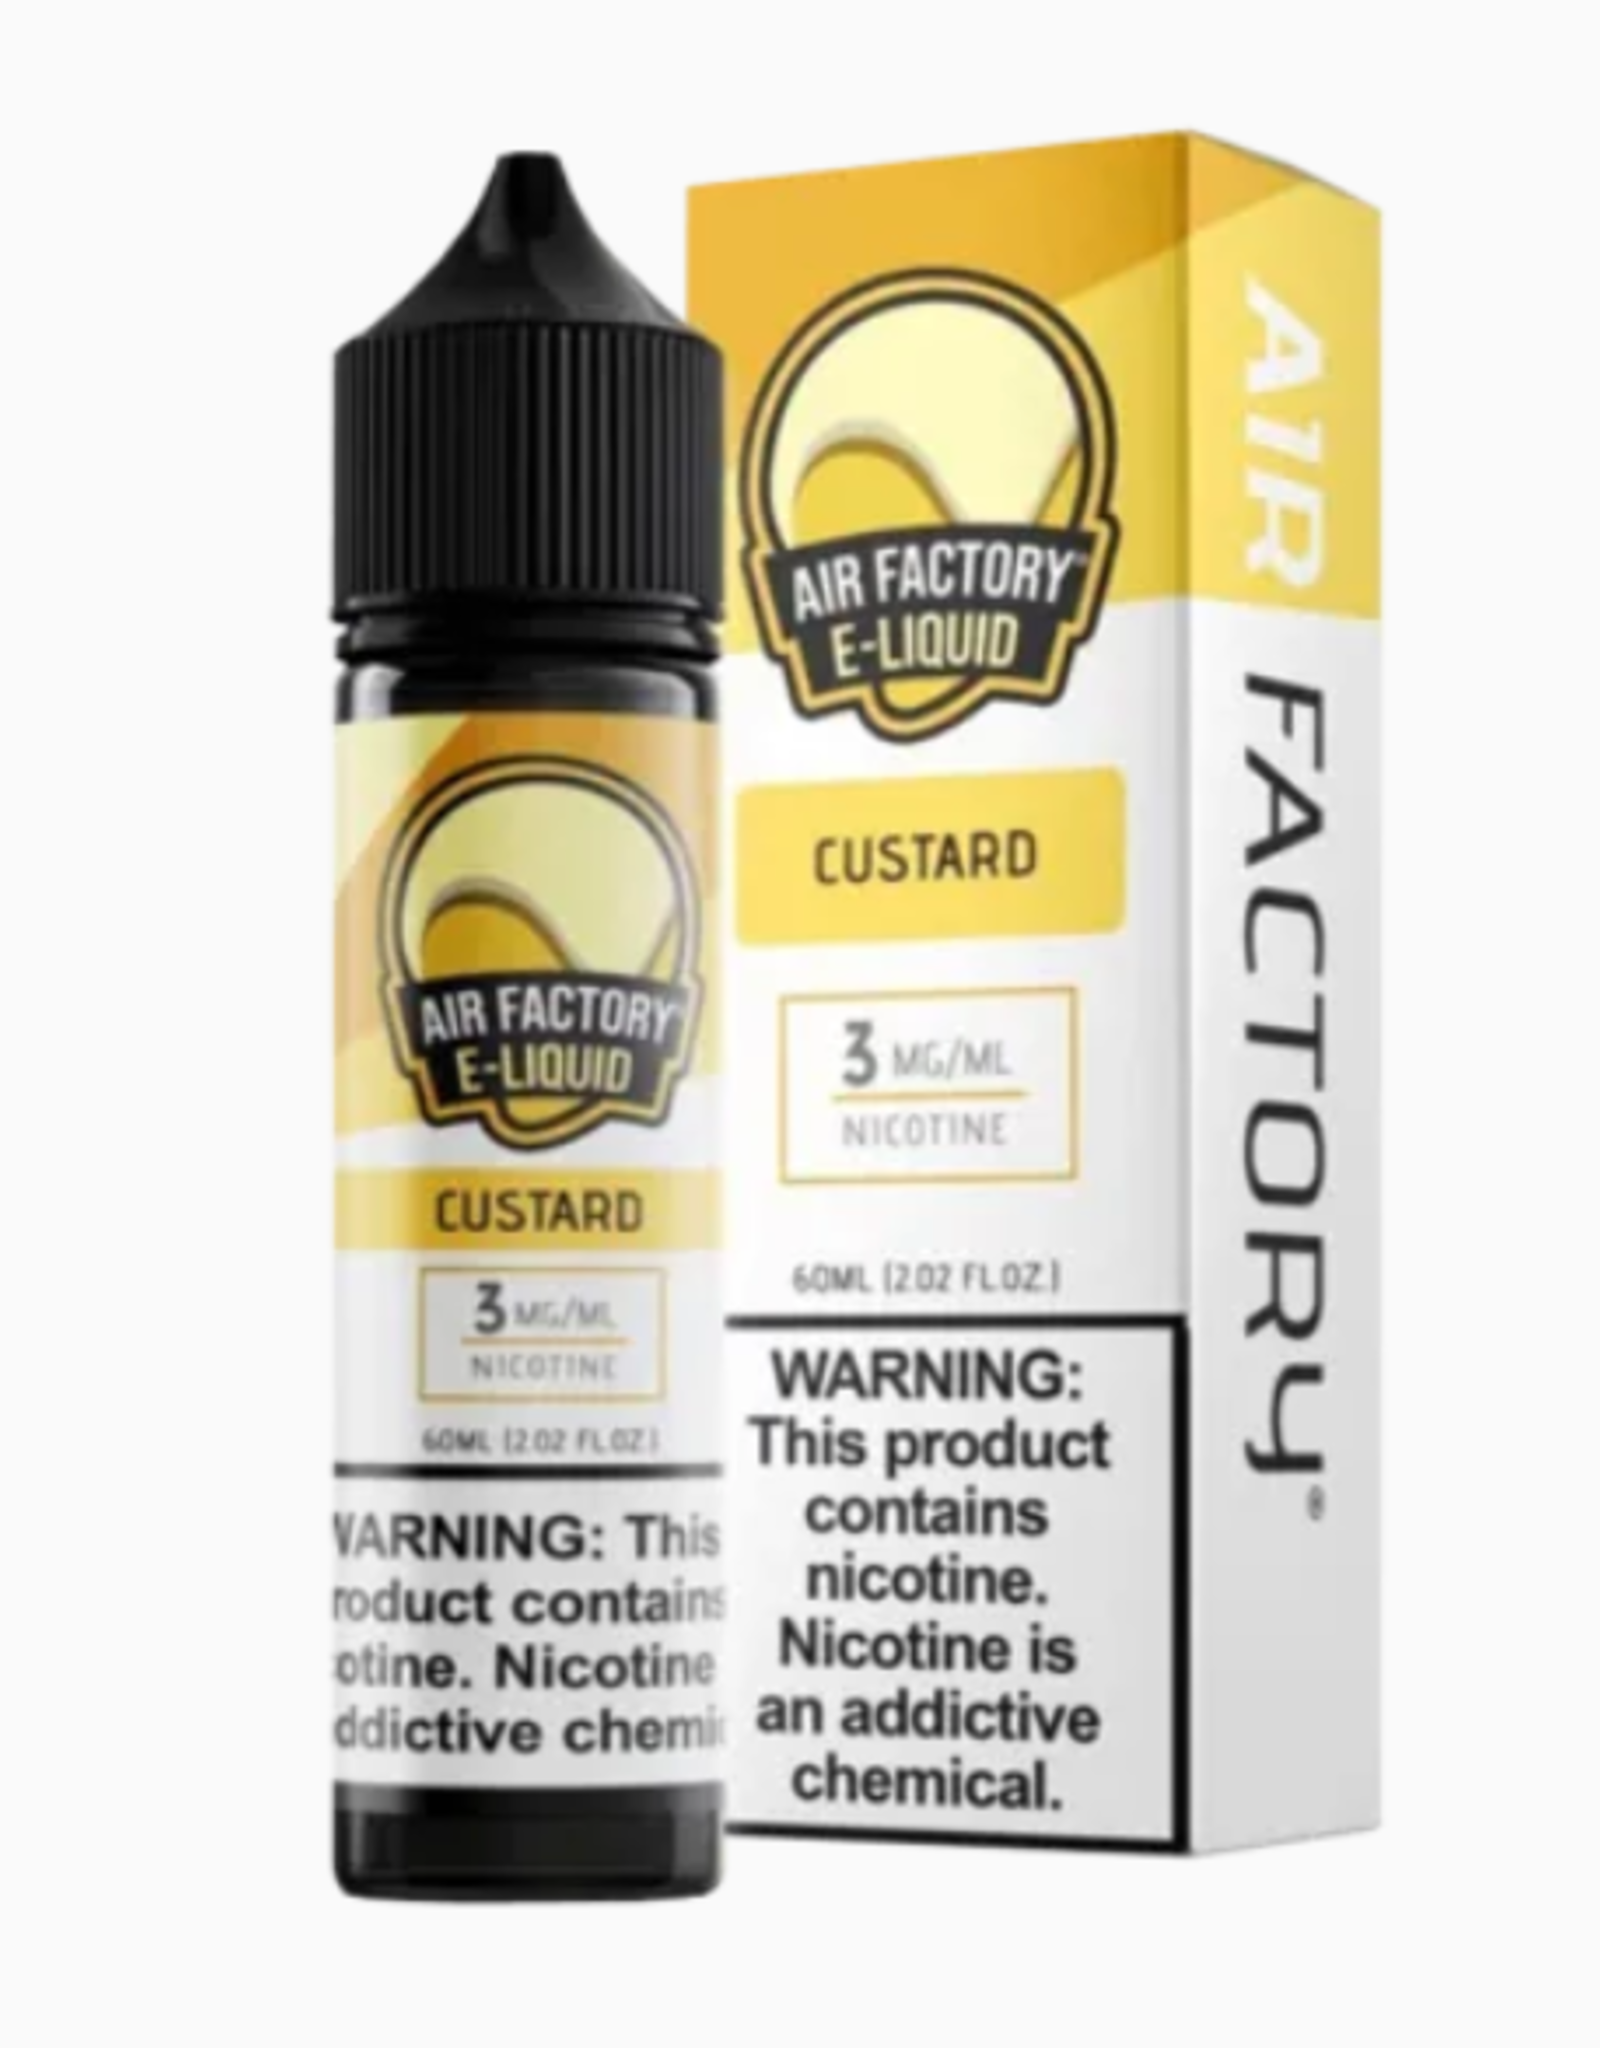 Air Factory Custard 60mL